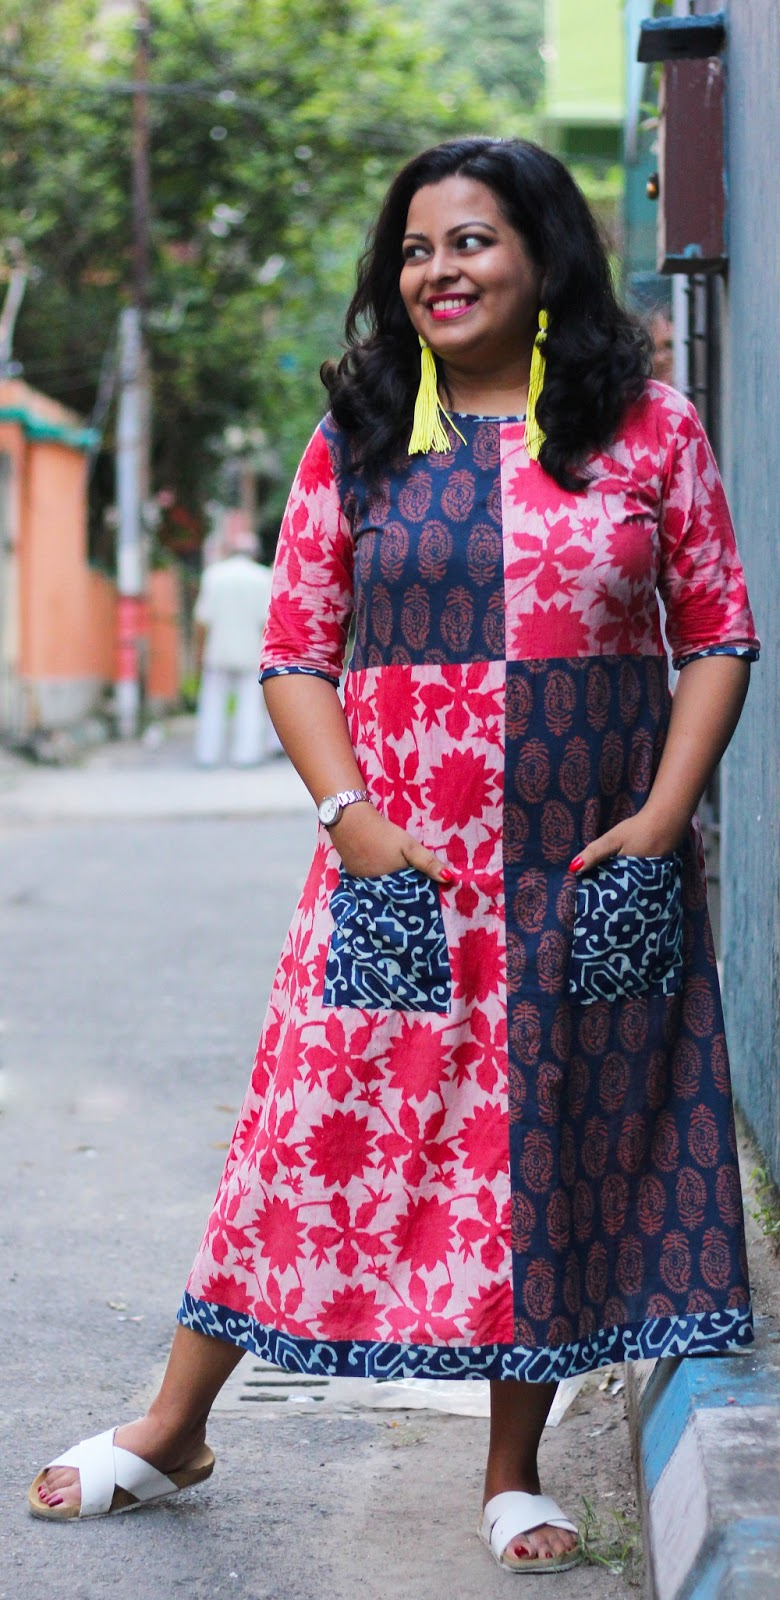 What to wear during Durga Puja - Dashami Fashion - Durga Puja Lookbook - Festive Lookbook - Live Laugh Dressup - Indian Fashion Blogger